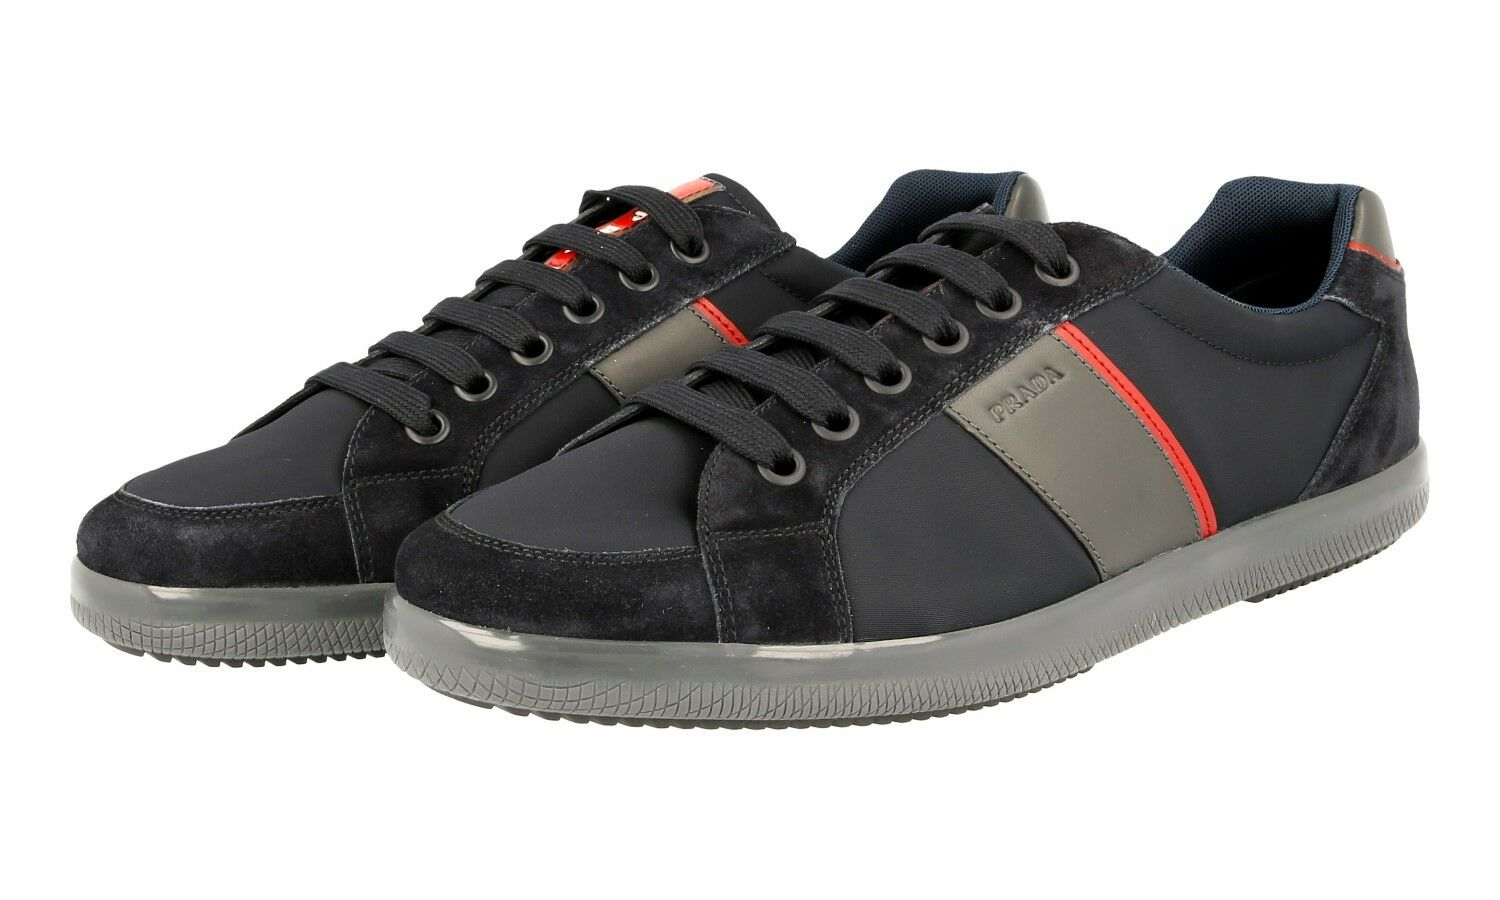 LUXUS PRADA SNEAKER SCHUHE 4E3043 blue red NEU NEW 8 42 42,5